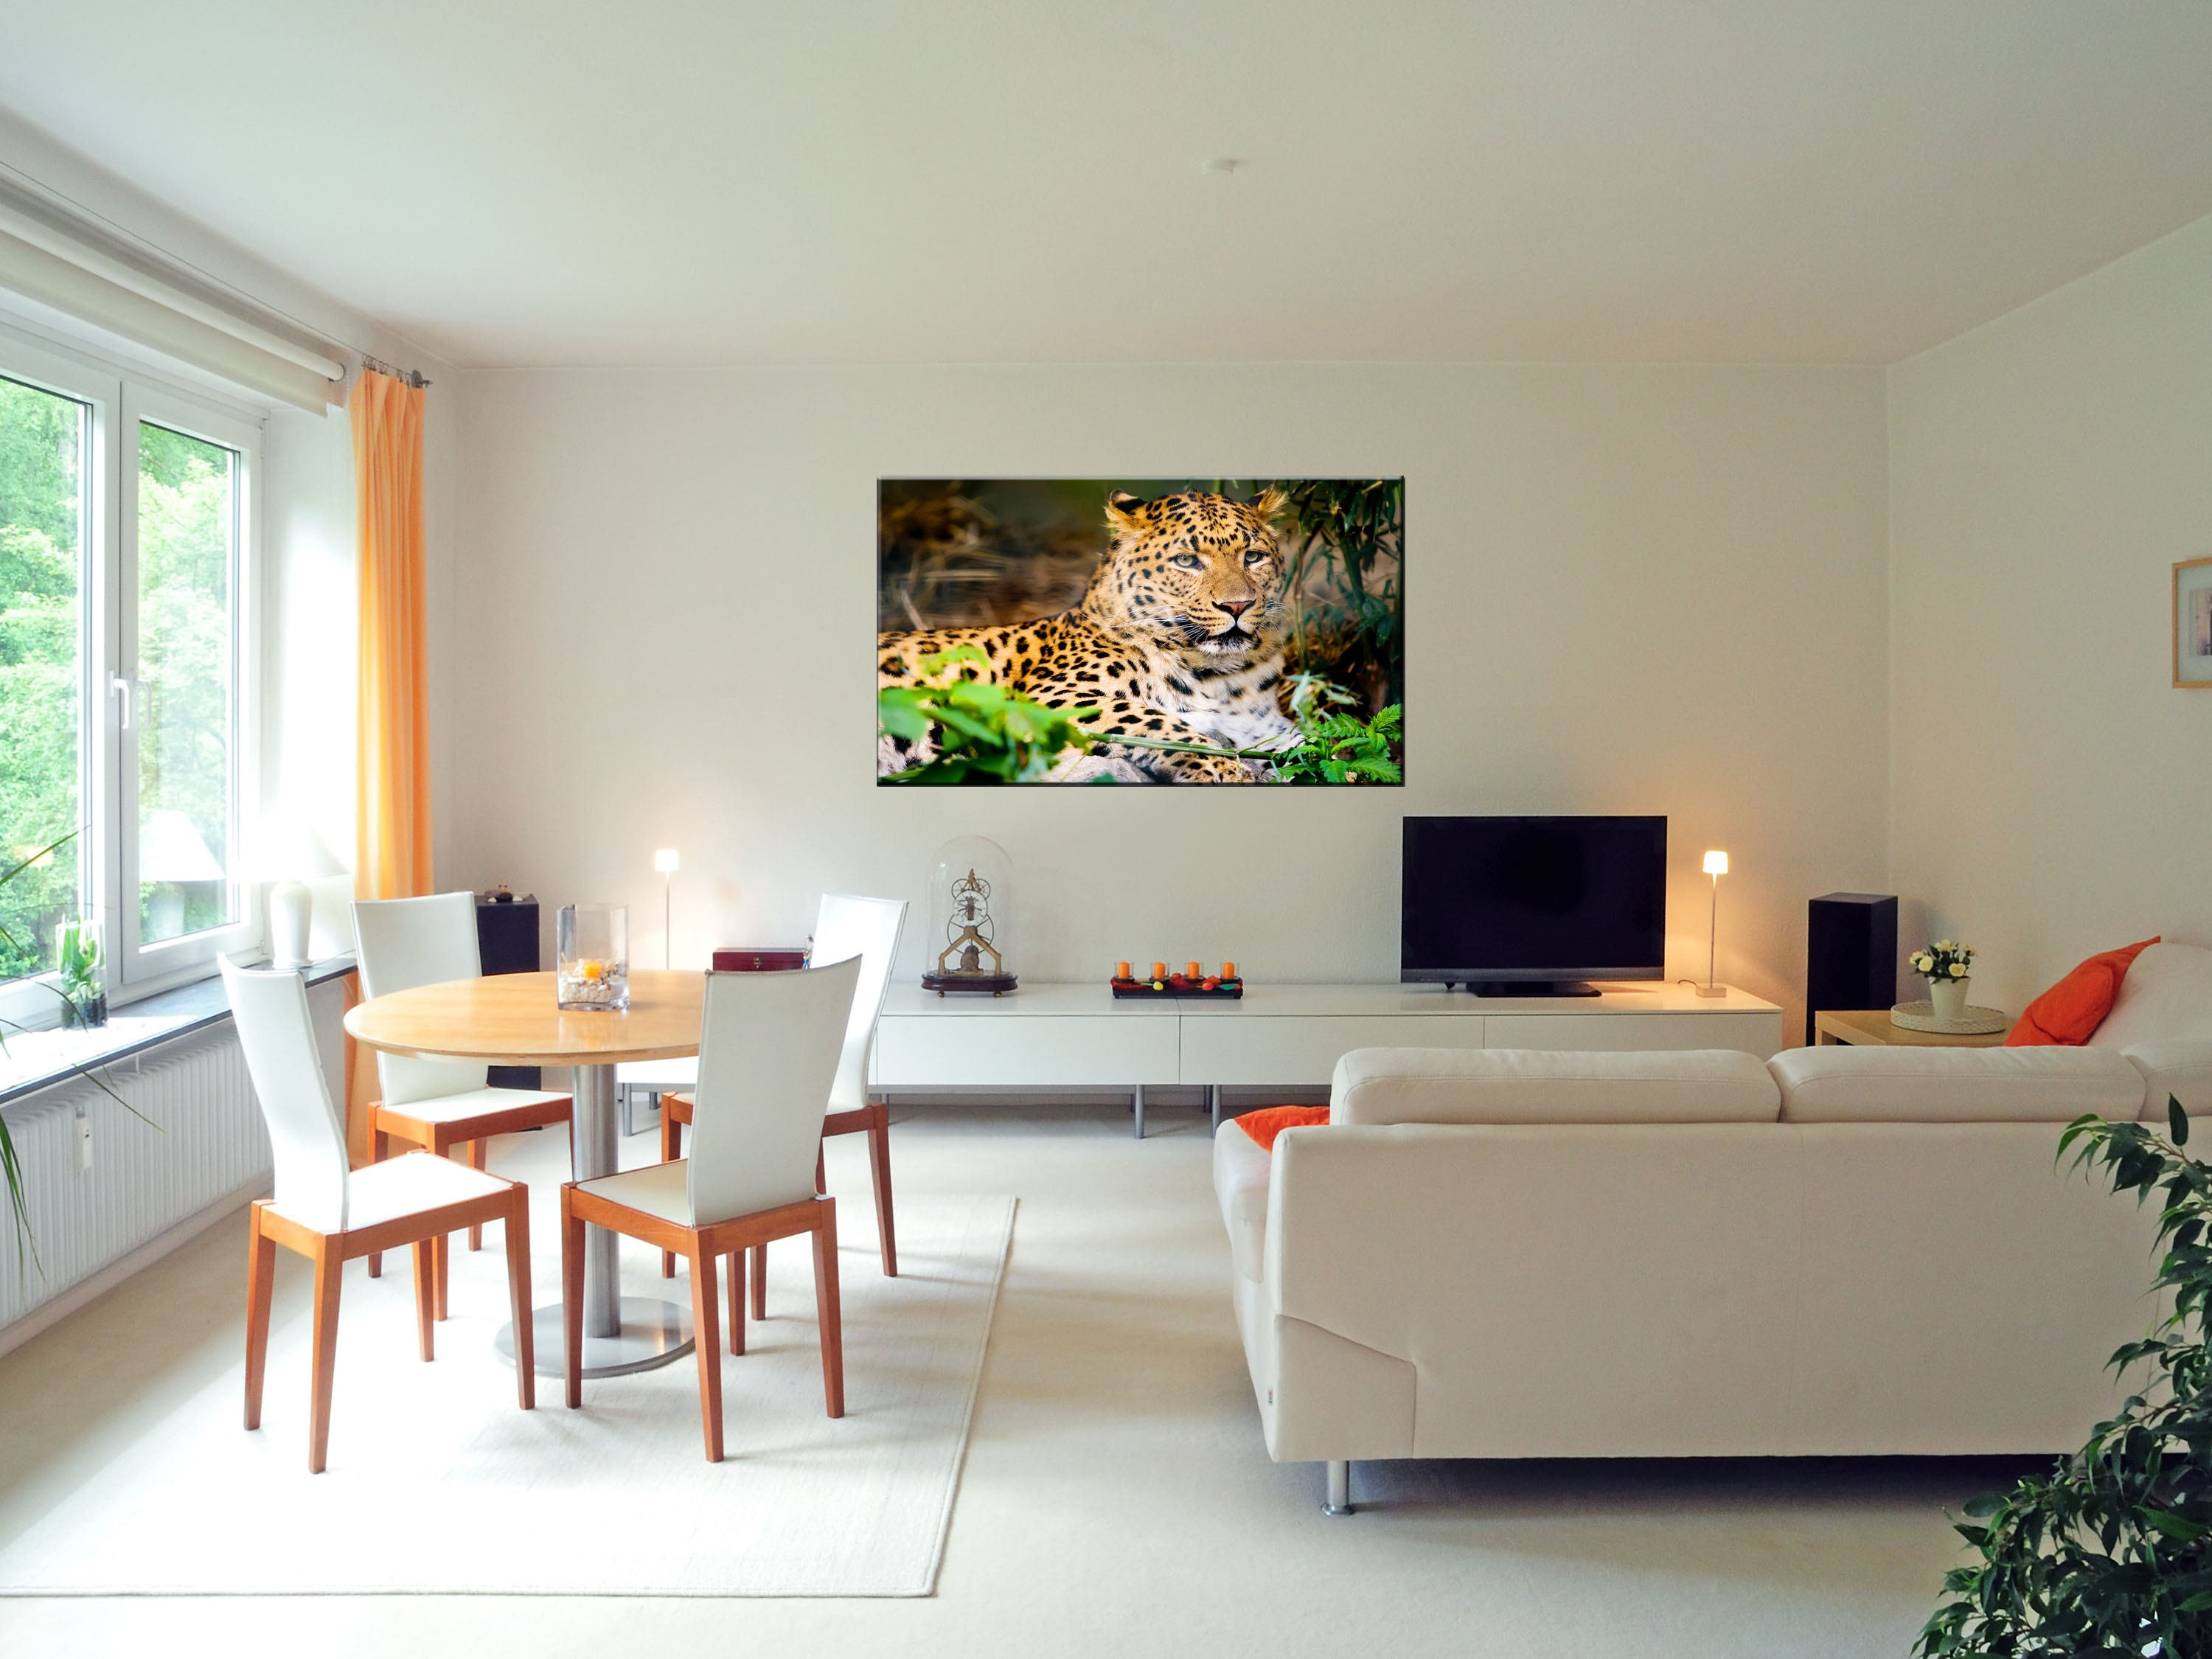 1 Panel Animal Wildlife Leopard Tiger Nyc Giclee Prints Artwork On Canvas    Wall Art Décor Picture Prints Set For Bedroom Living Room Home